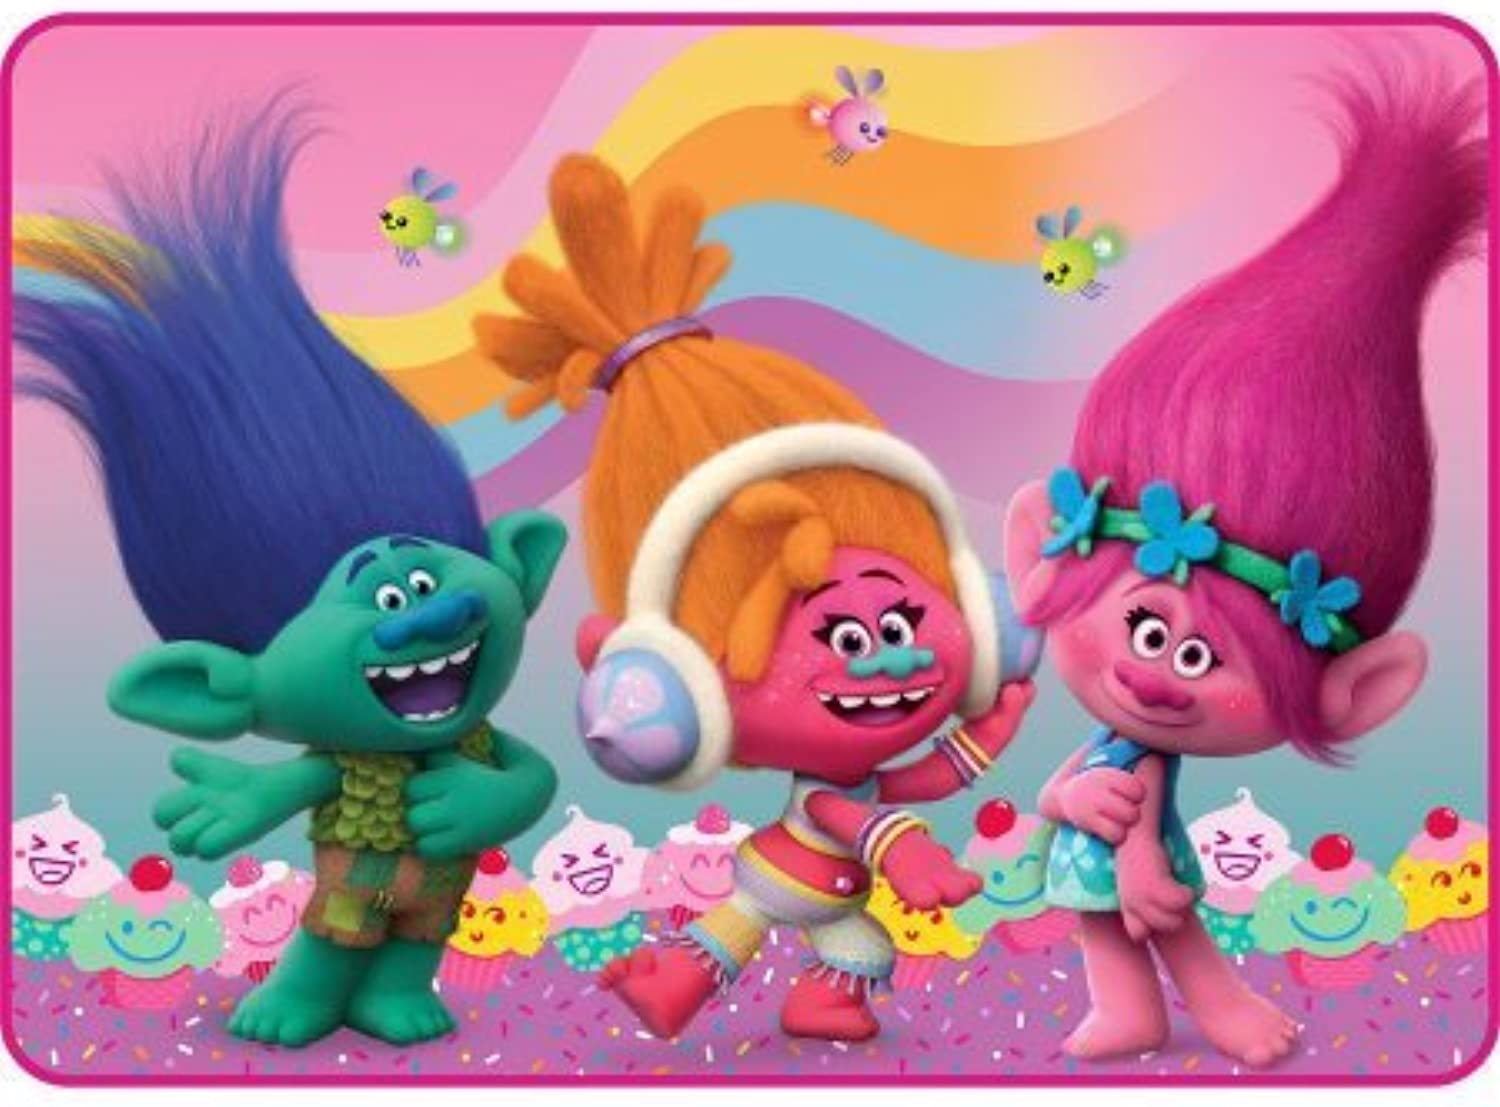 Cute, Adorable DreamWorks Trolls Flowing Rainbow 30  x 46  Accent Rug, Pink